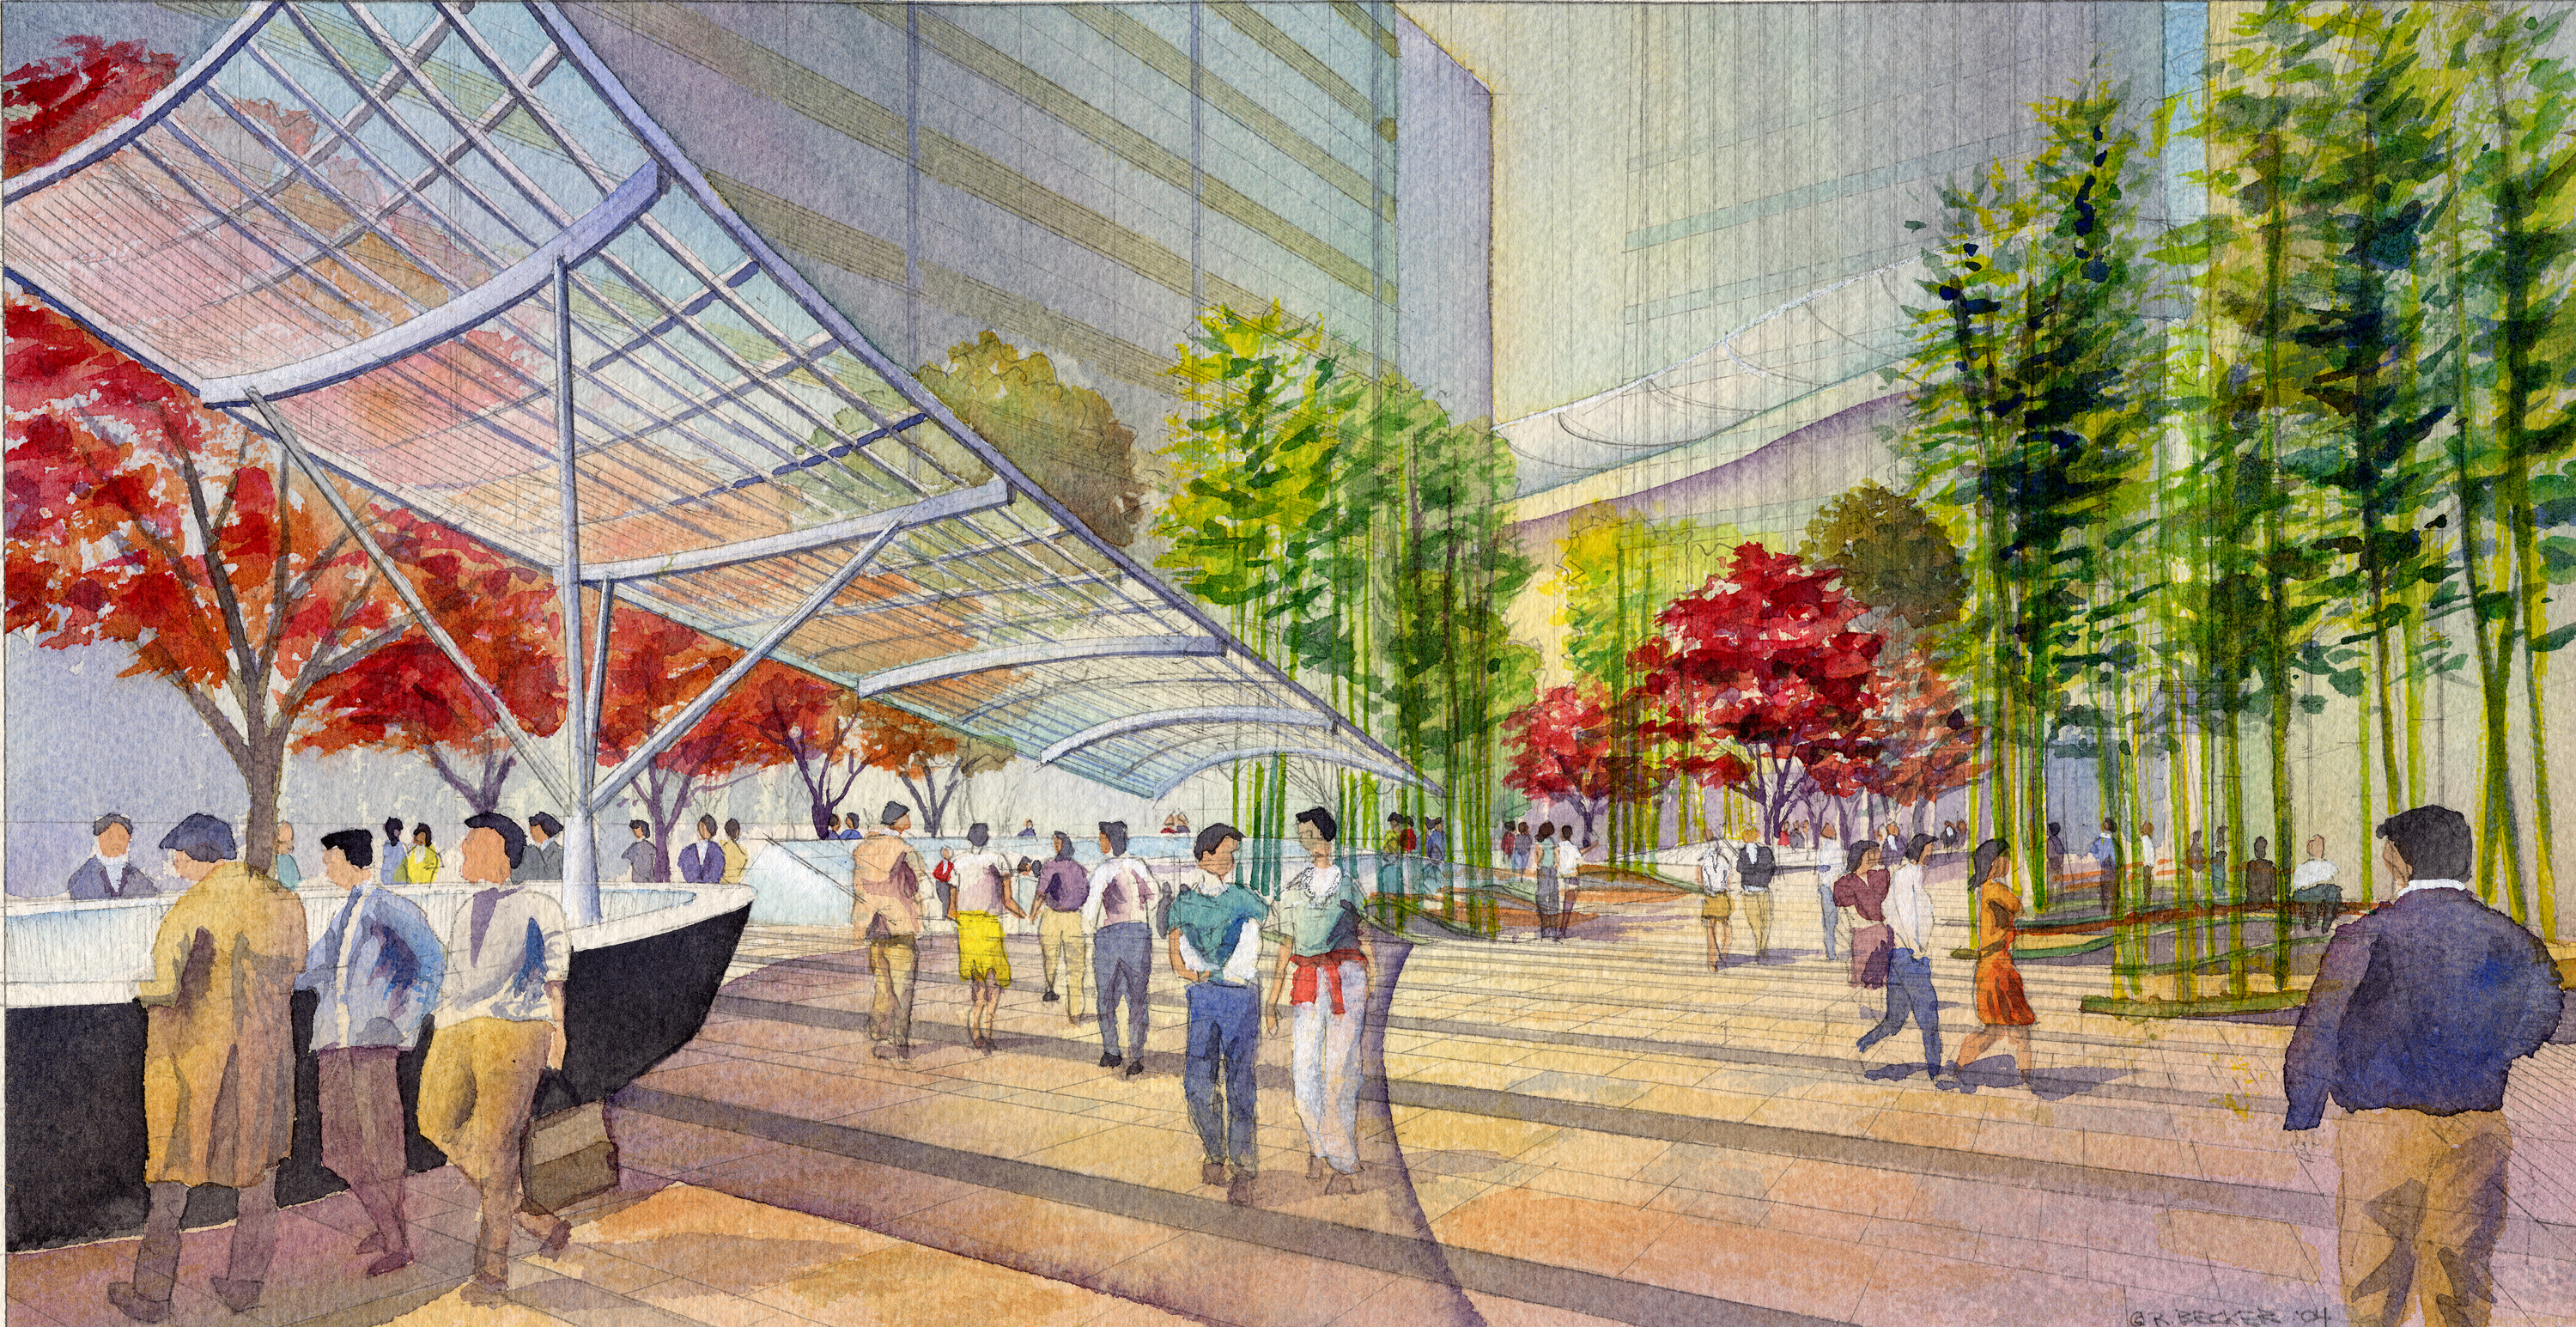 EDAW_Roppongi_Canopy_Architectural_Rendering_Watercolor